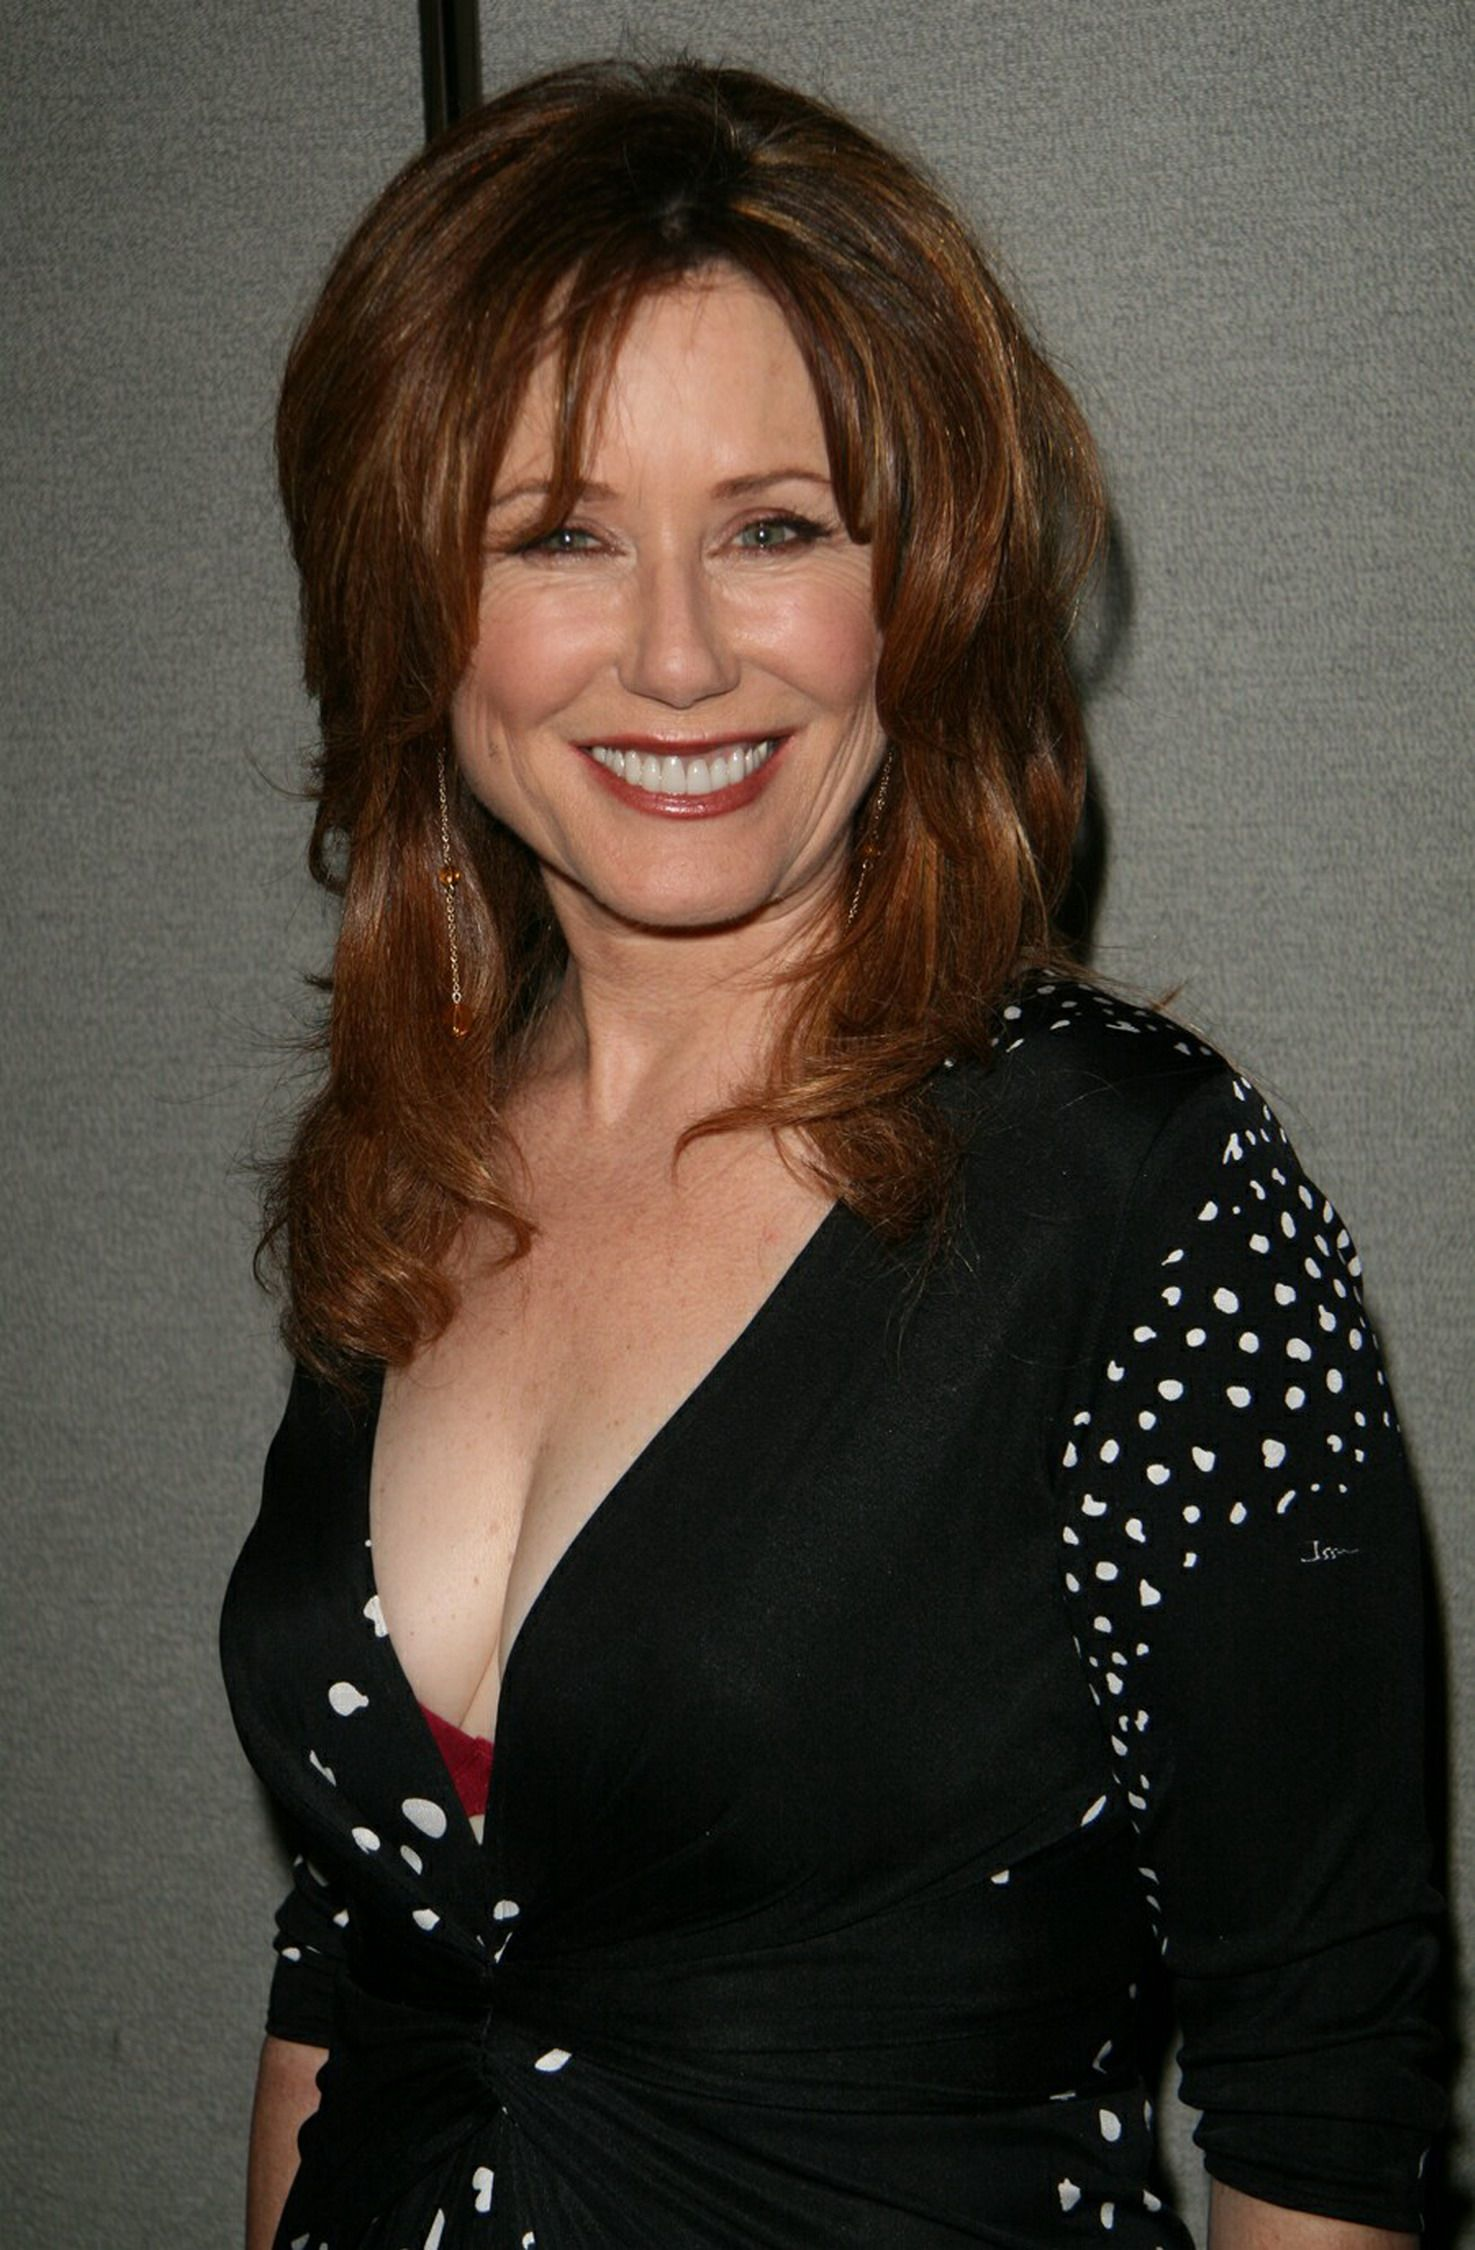 mary mcdonnell daughtermary mcdonnell imdb, mary mcdonnell daughter, mary mcdonnell er, mary mcdonnell in grey's anatomy, mary mcdonnell michael mell, mary mcdonnell young, mary mcdonnell tumblr, mary mcdonnell twitter, mary mcdonnell 1990, mary mcdonnell instagram, mary mcdonnell foto, mary mcdonnell and edward james olmos, mary mcdonnell young photos, mary mcdonnell, mary mcdonnell dances with wolves, mary mcdonnell penny hardaway, mary mcdonnell 2015, mary mcdonnell biography, mary mcdonnell battlestar galactica, mary mcdonnell dances with wolves photos